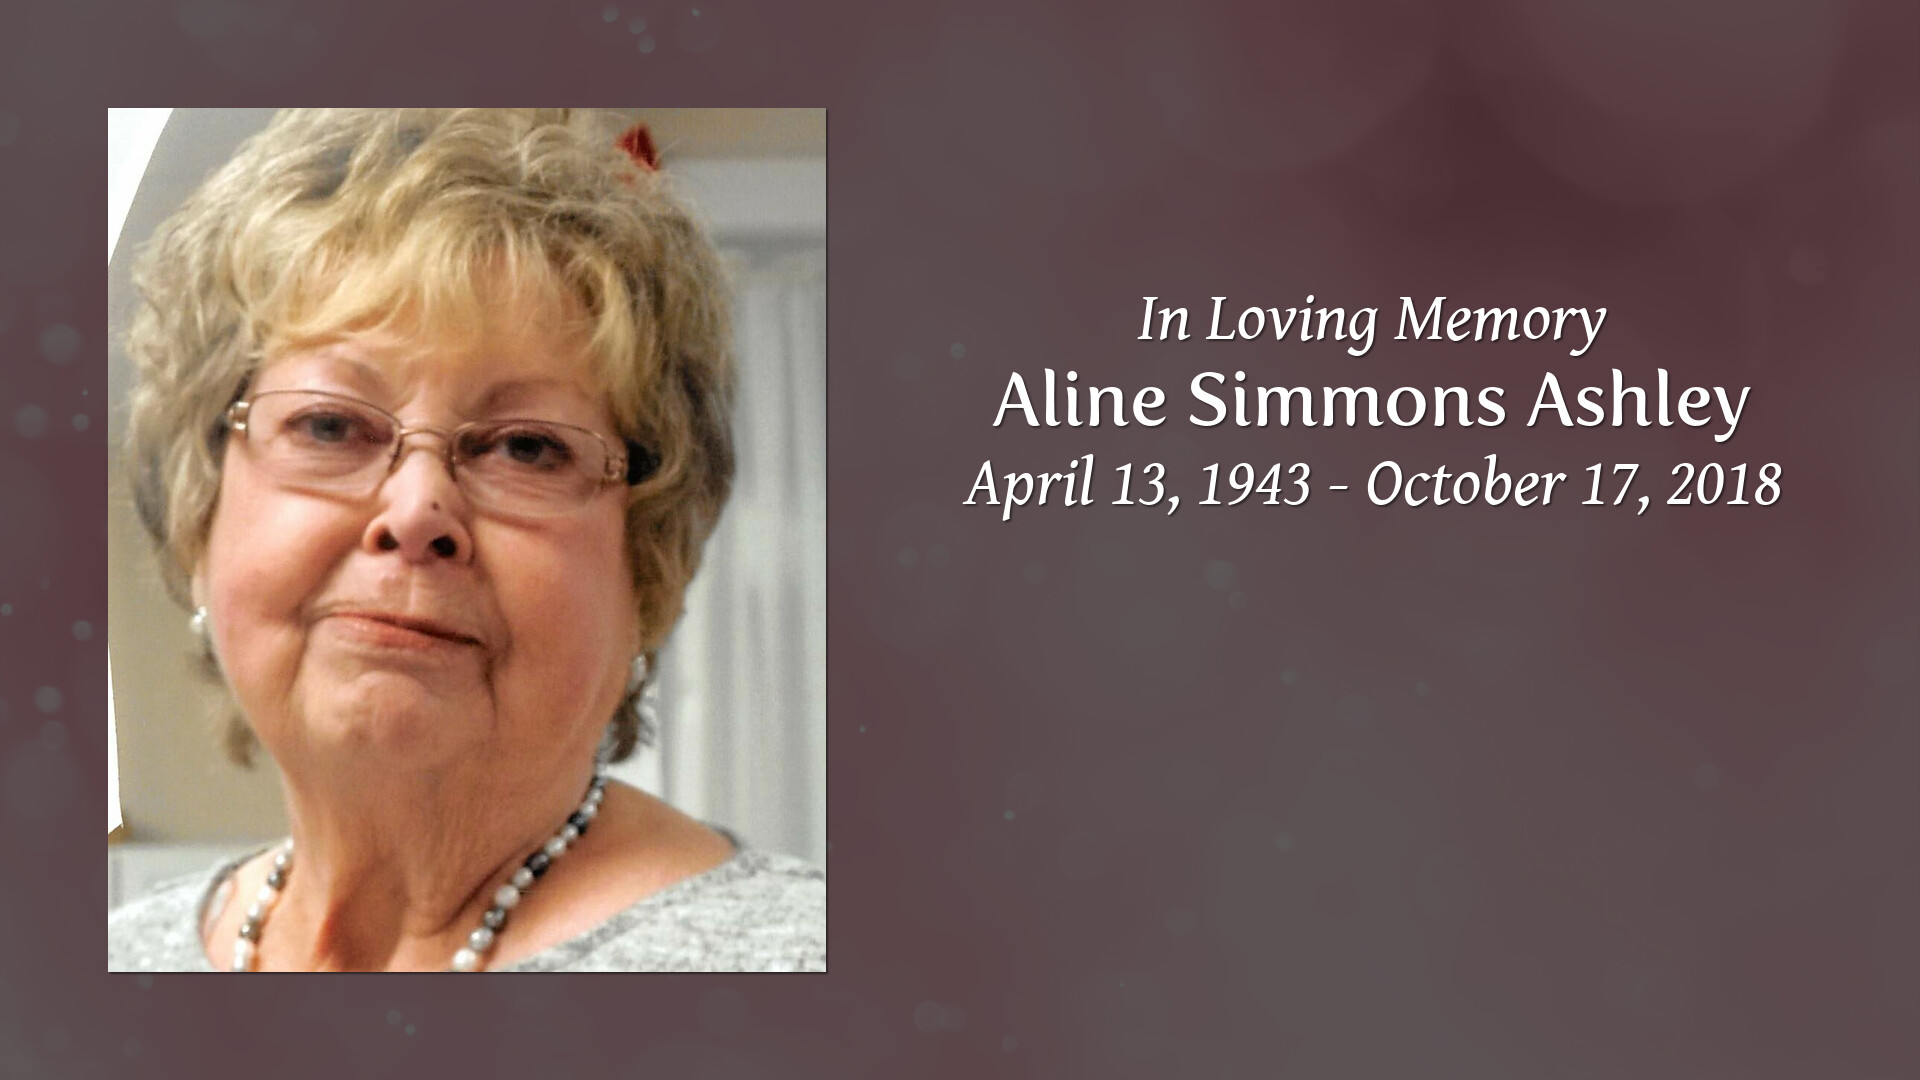 Allene Simmons obituary | aline simmons ashley of sparta, tennessee | high